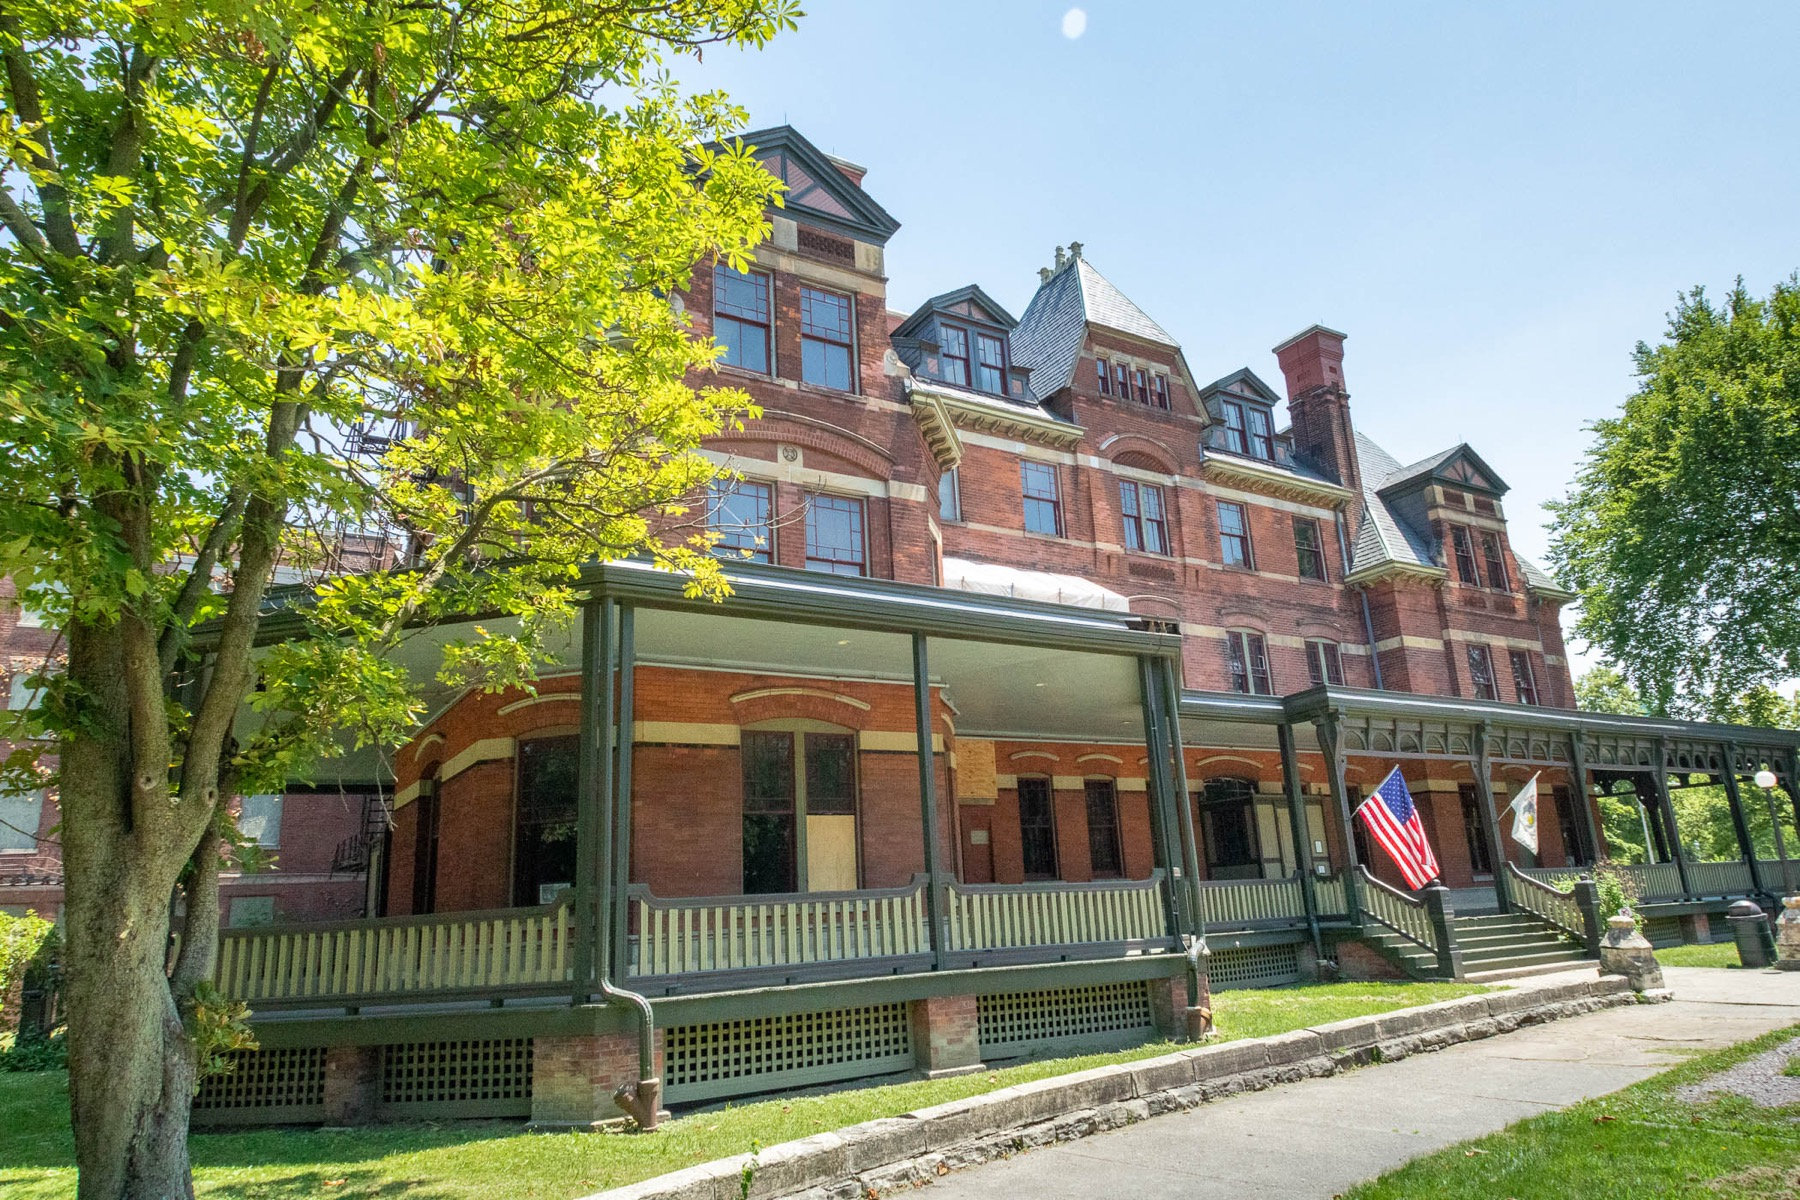 Explore Chicago's historic Pullman neighborhood